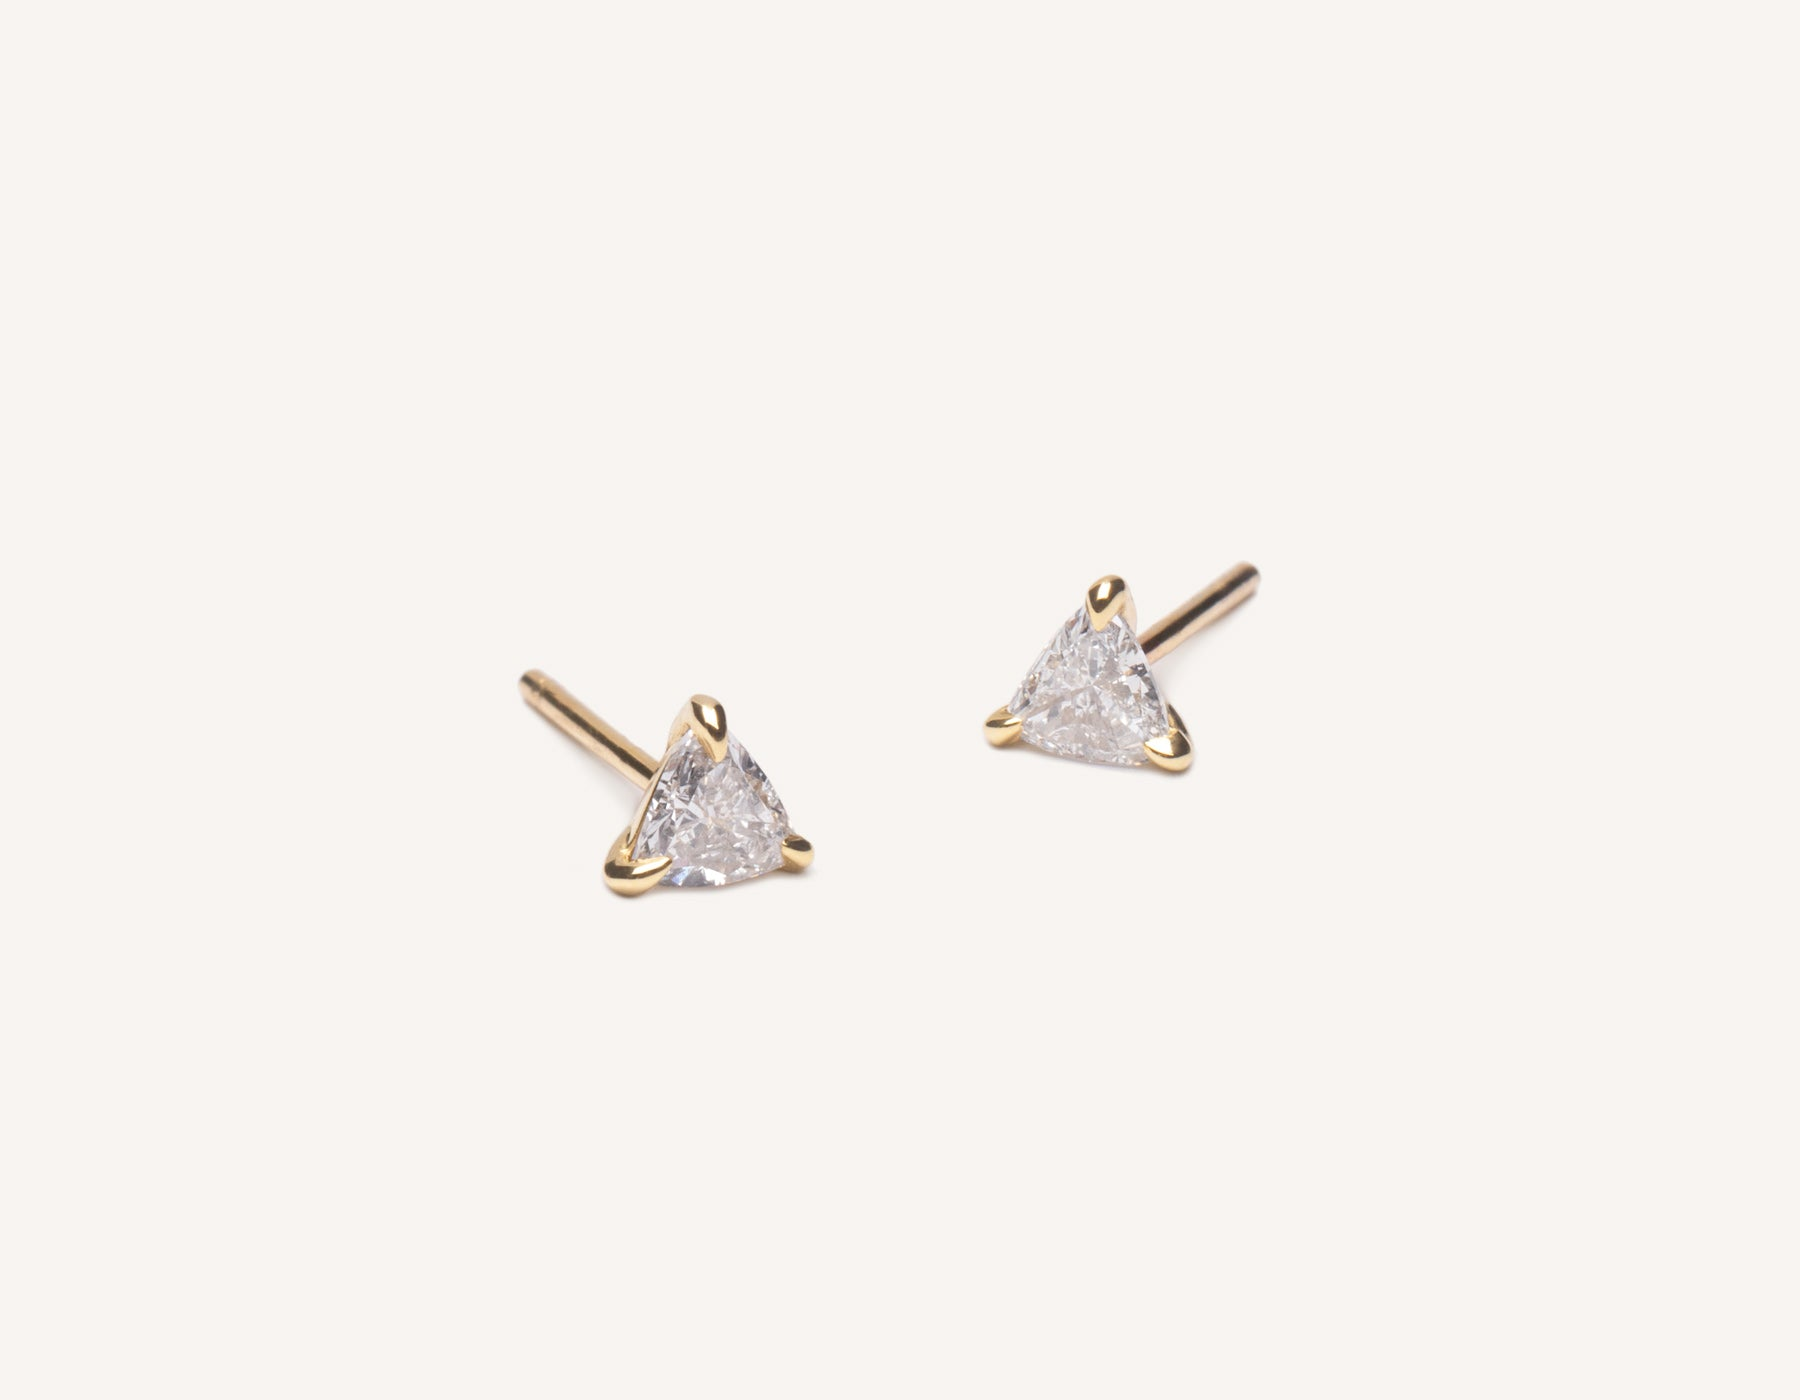 Modern delicate 14k solid gold .34 carat Trillion Diamond Earrings by Vrai & Oro, 14K Yellow Gold